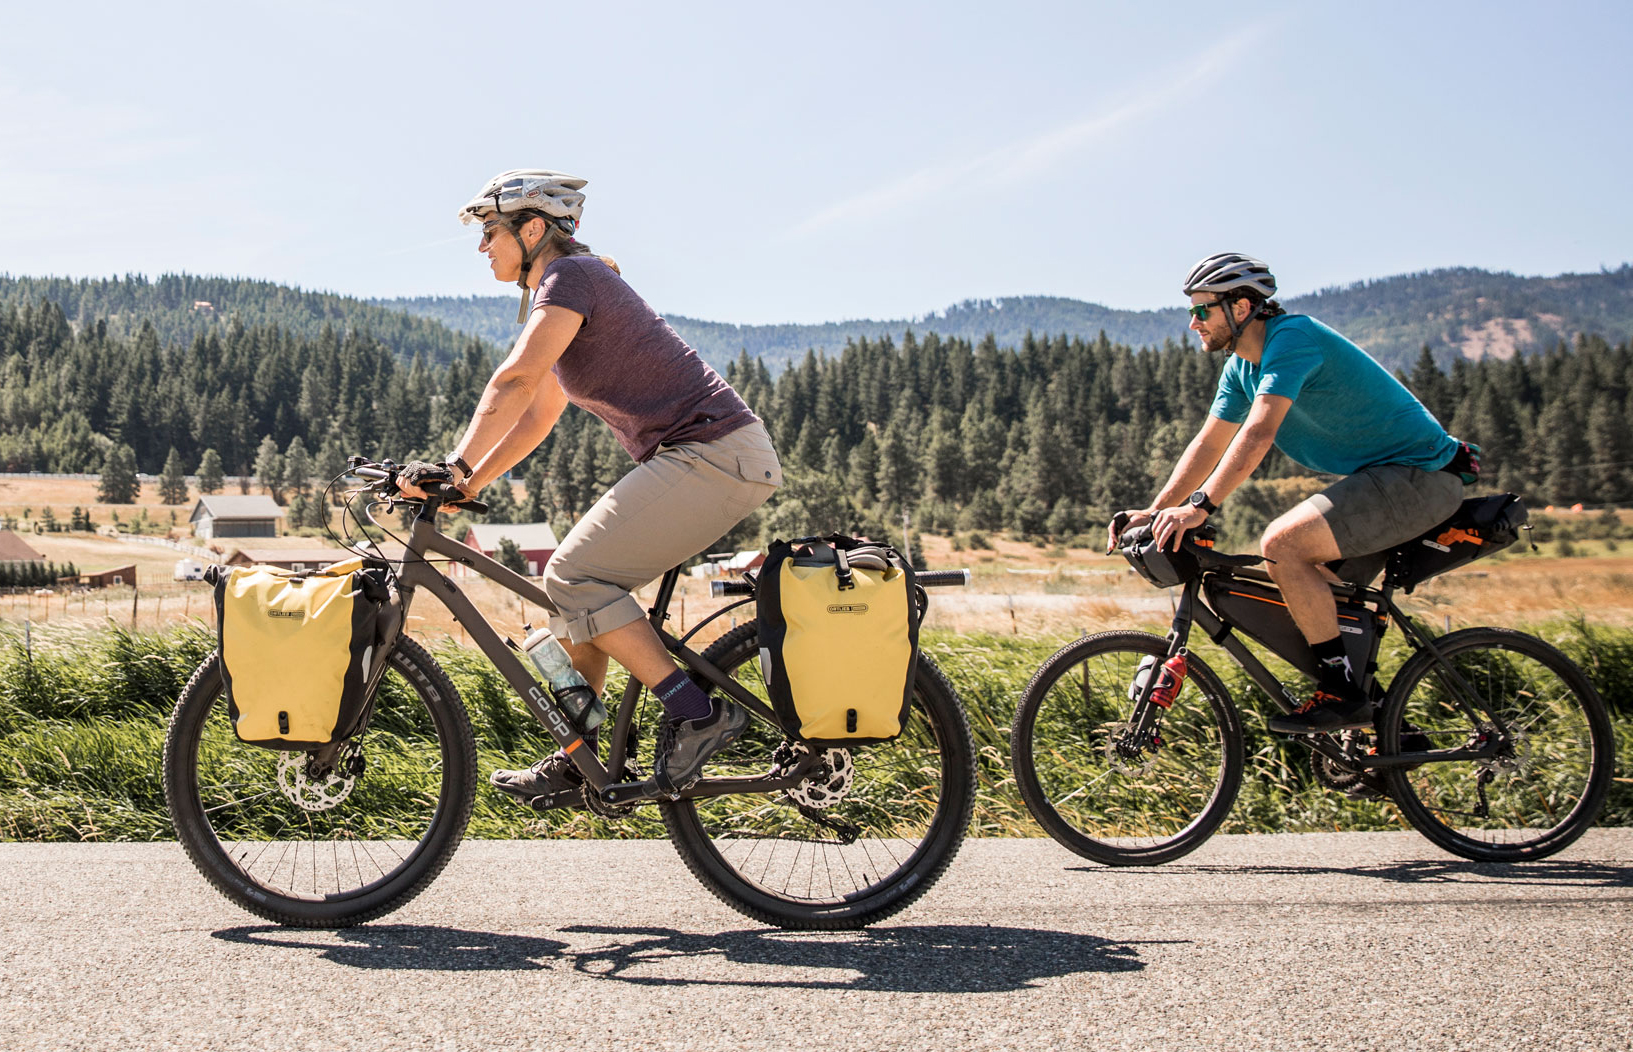 REI's 'Unimog' for Bikepacking: ADV 4 2 Bicycle Review | GearJunkie